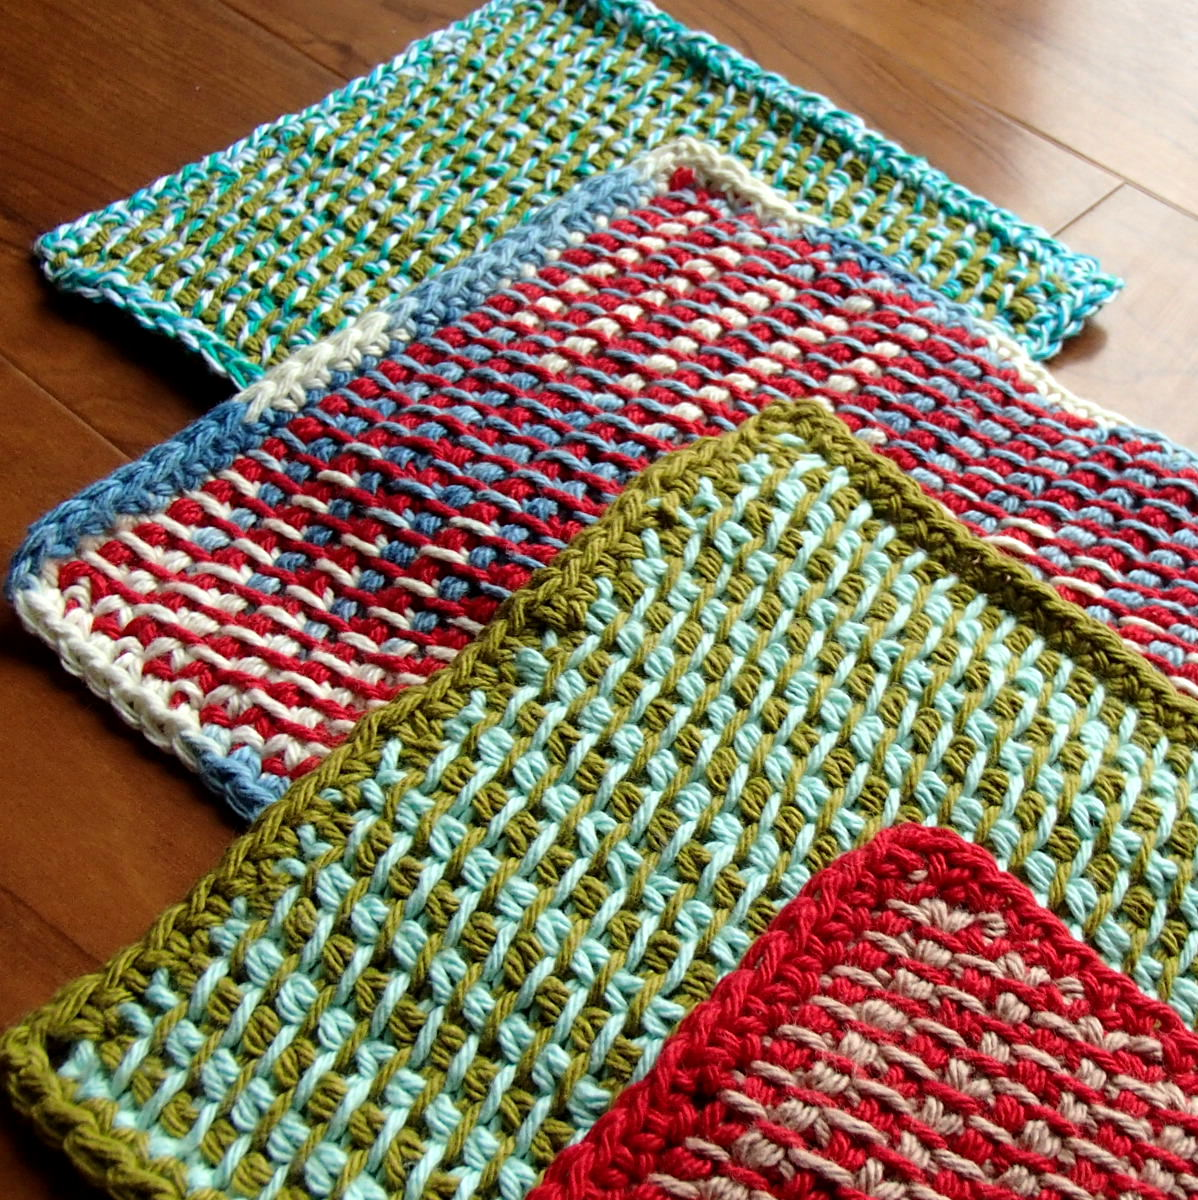 Crocheting With Two Colors : Two color Tunisian Potholders